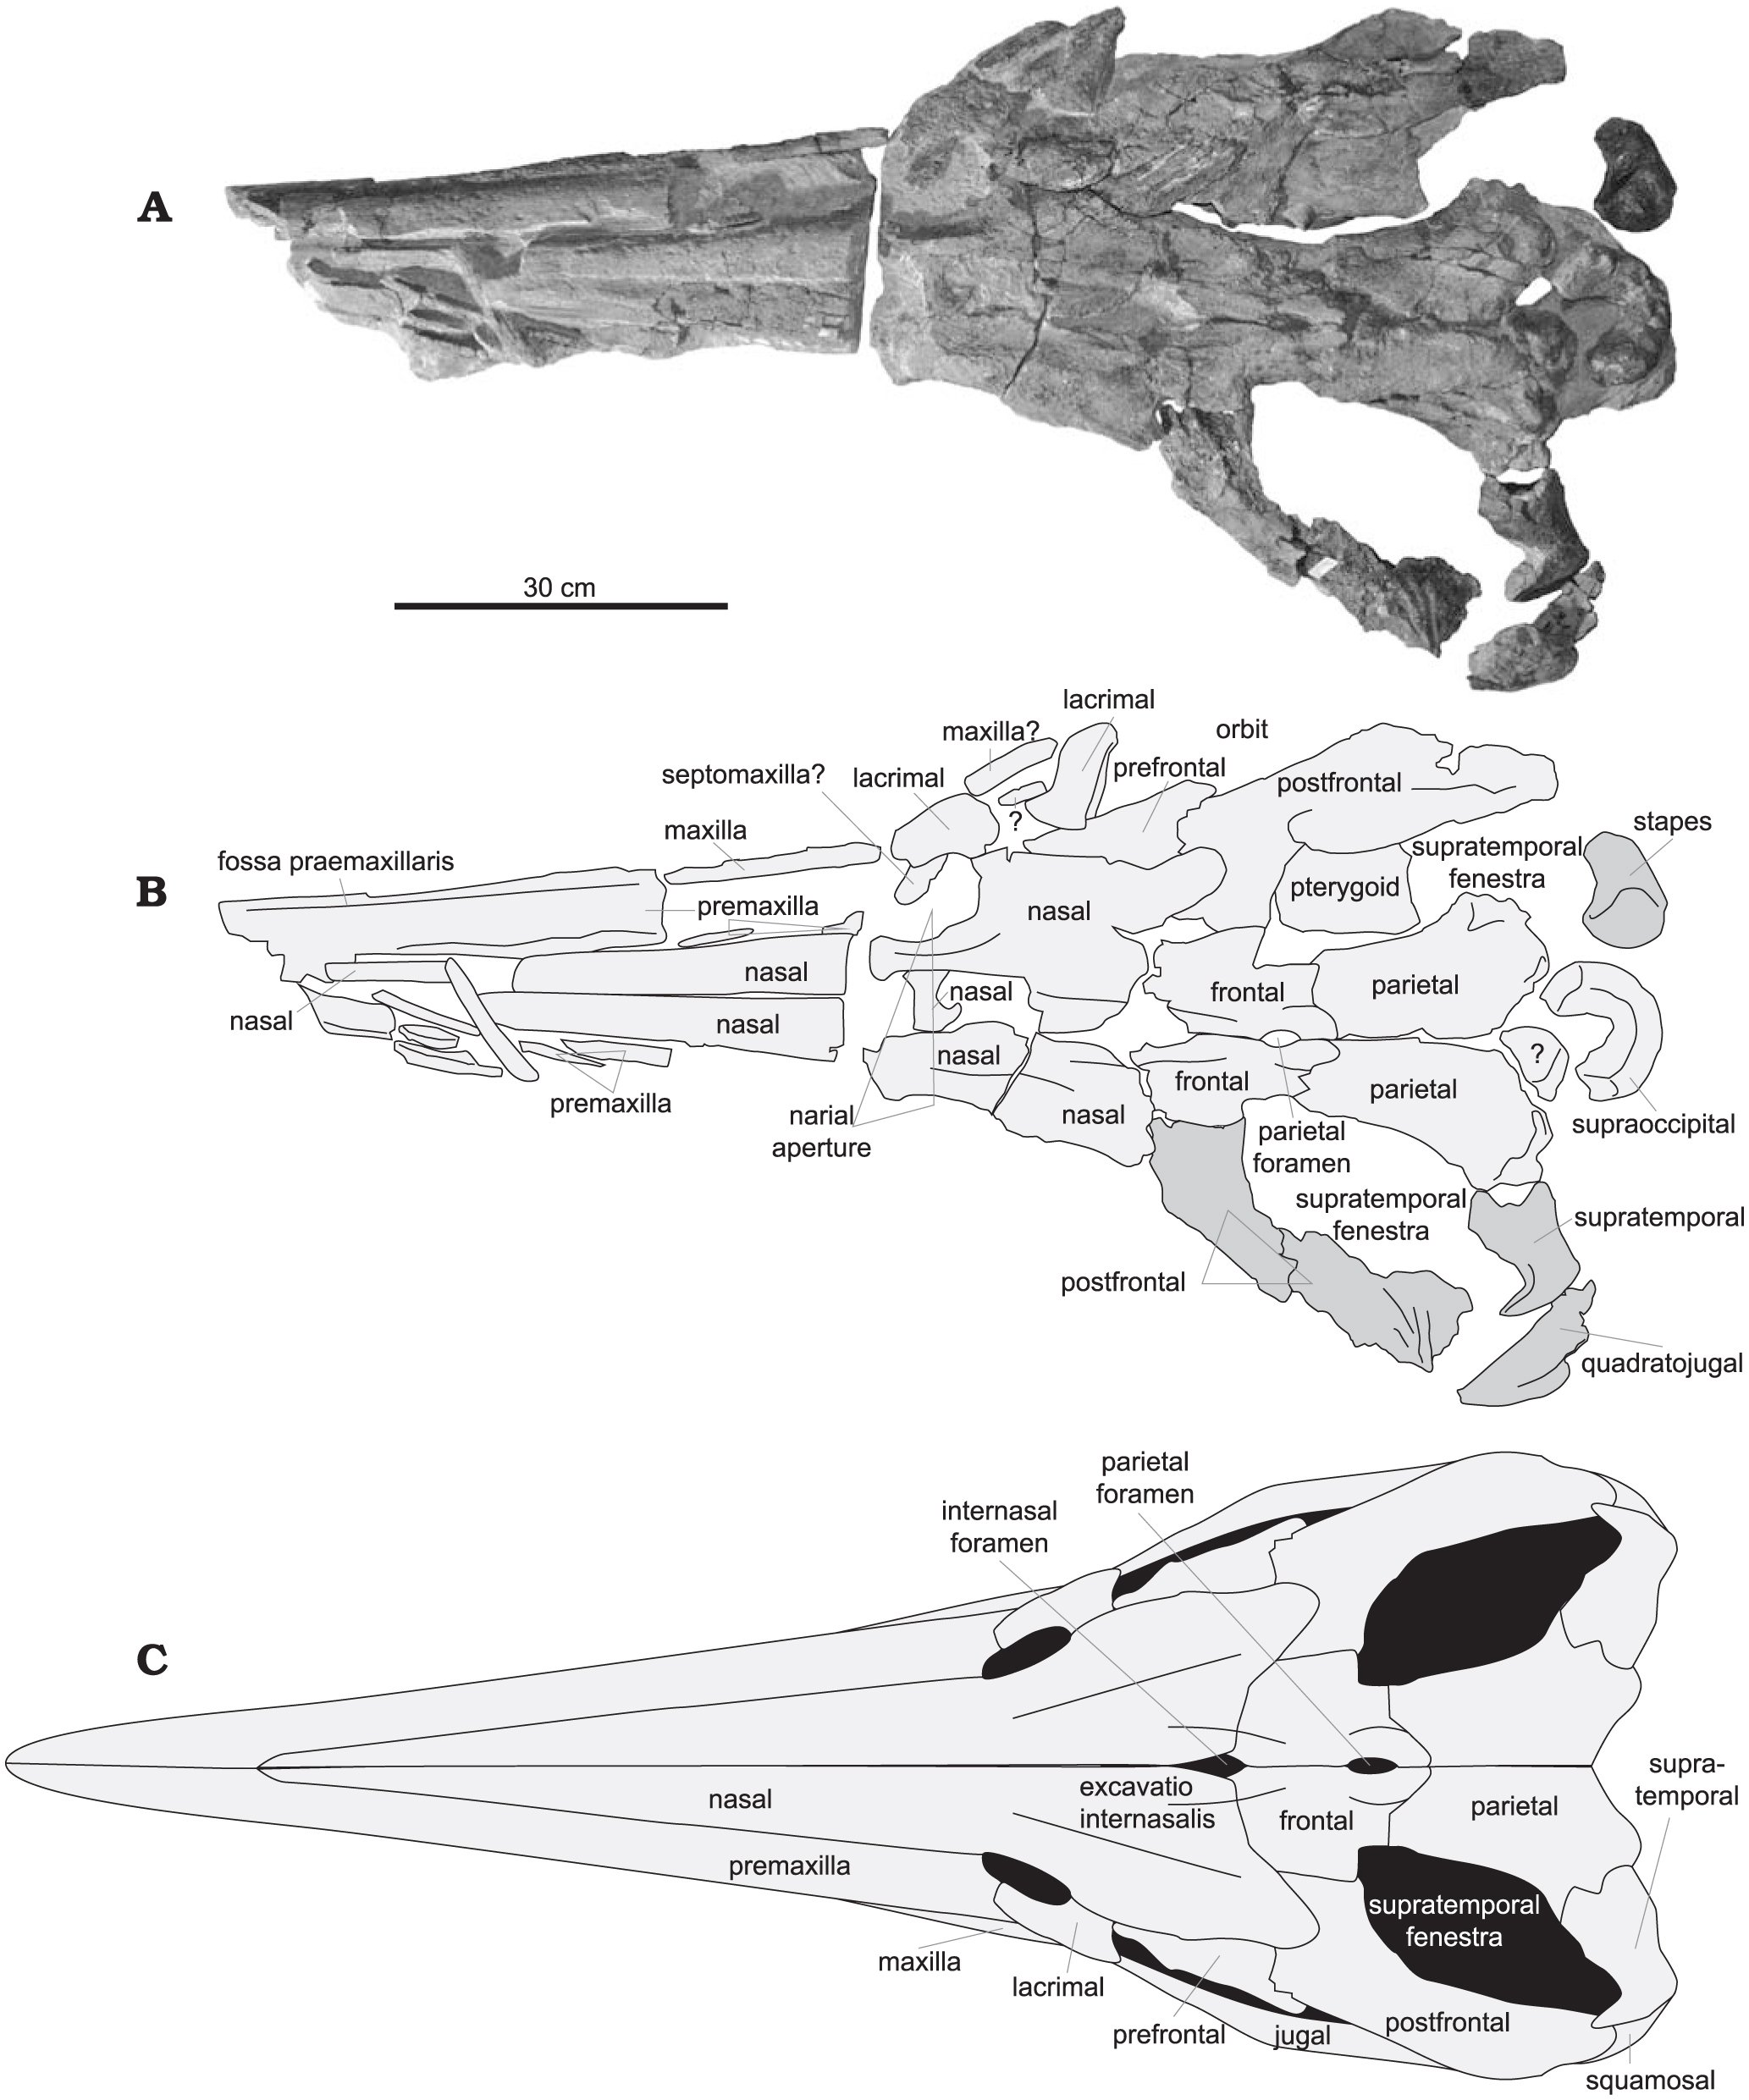 New Data On The Ichthyosaur Platypterygius Hercynicus And